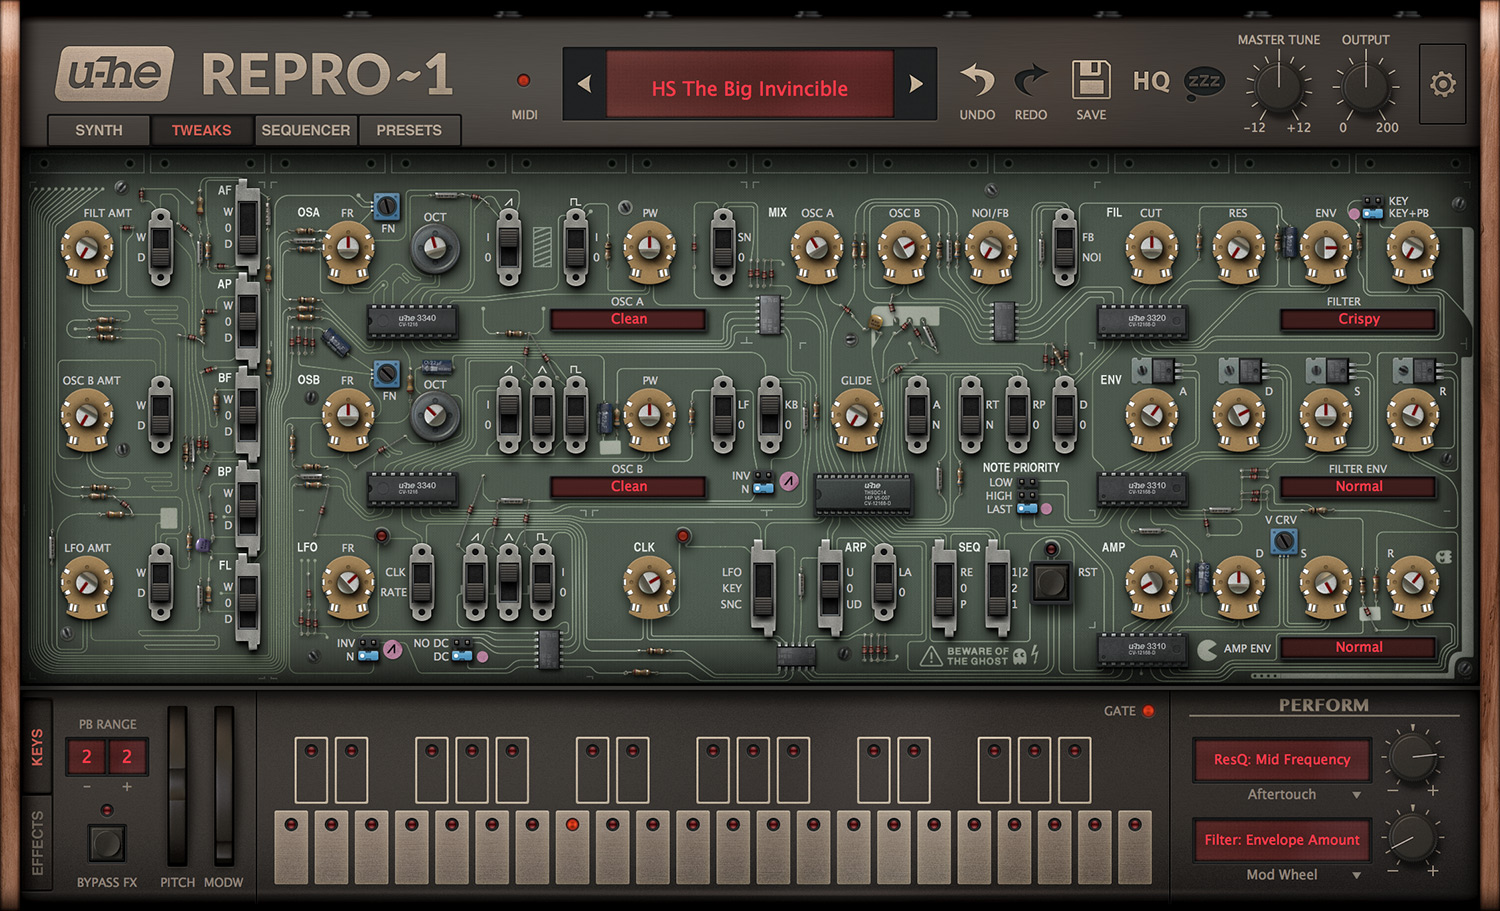 KVR: u-he releases Repro-1 for Mac OS X, Windows and Linux